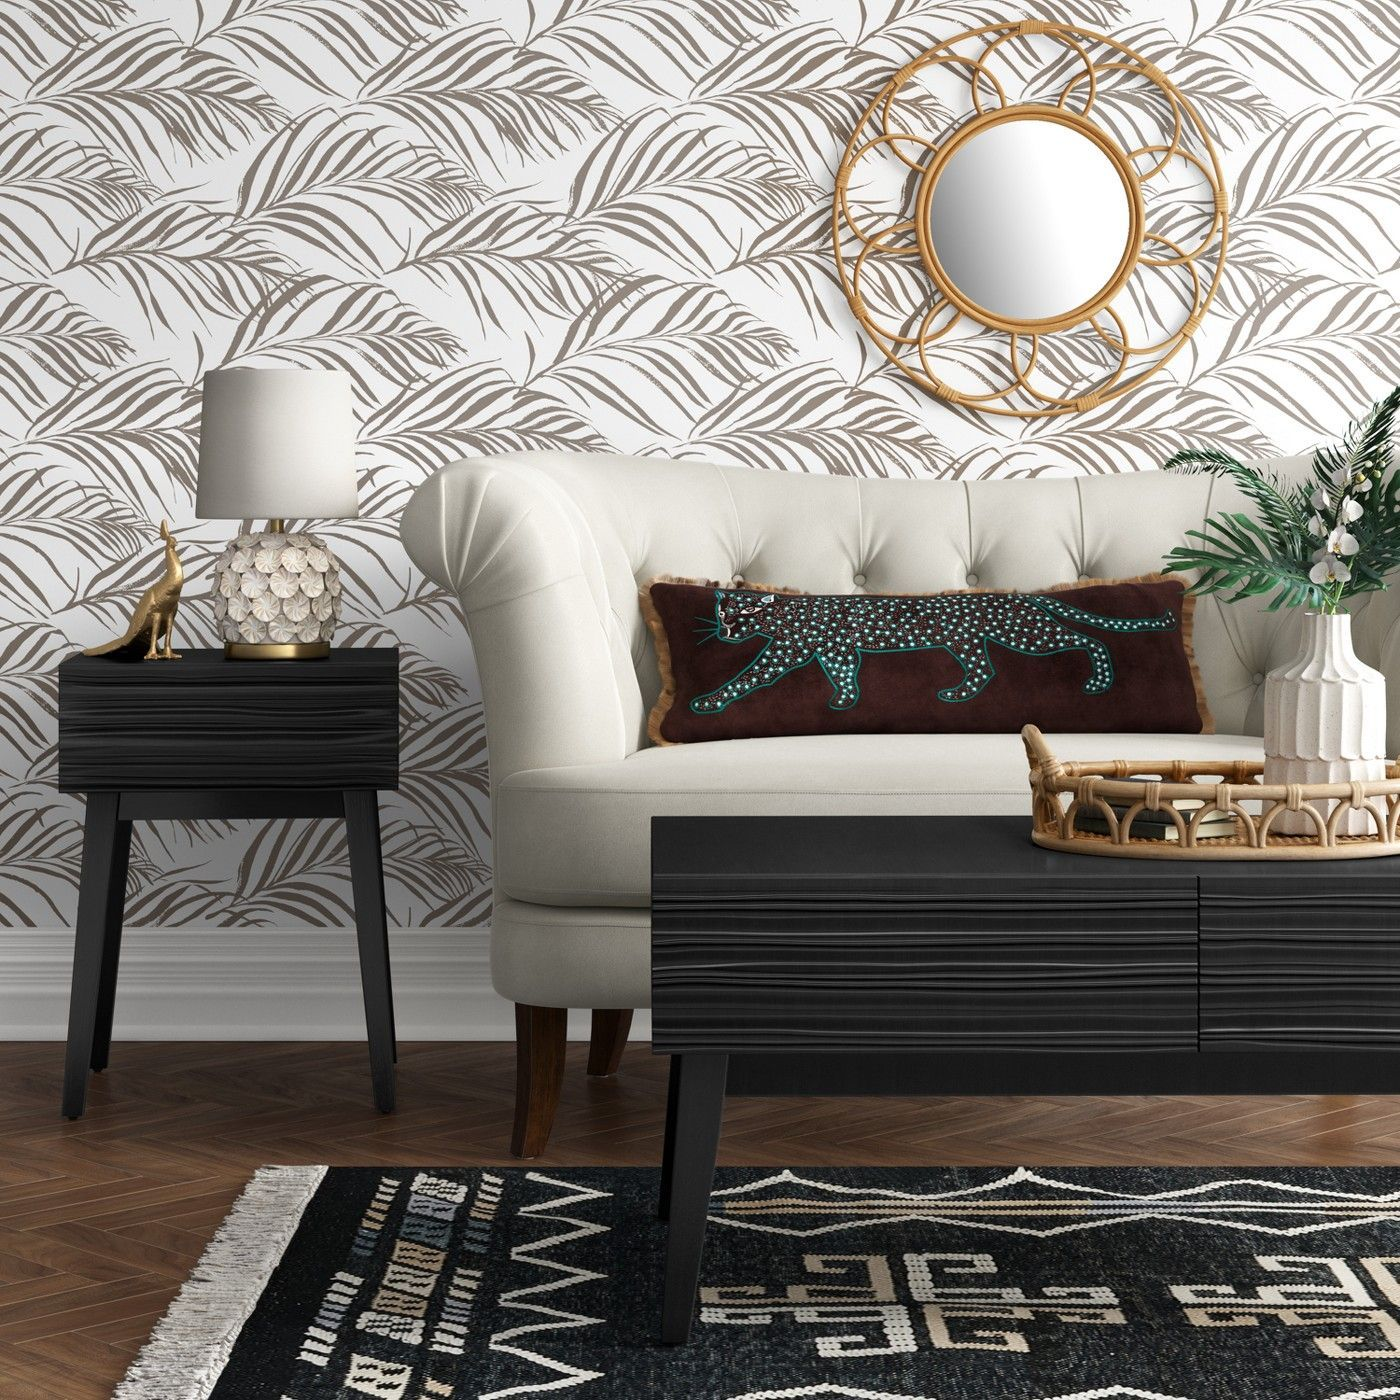 Target's After-Christmas Furniture Clearance on accent ...